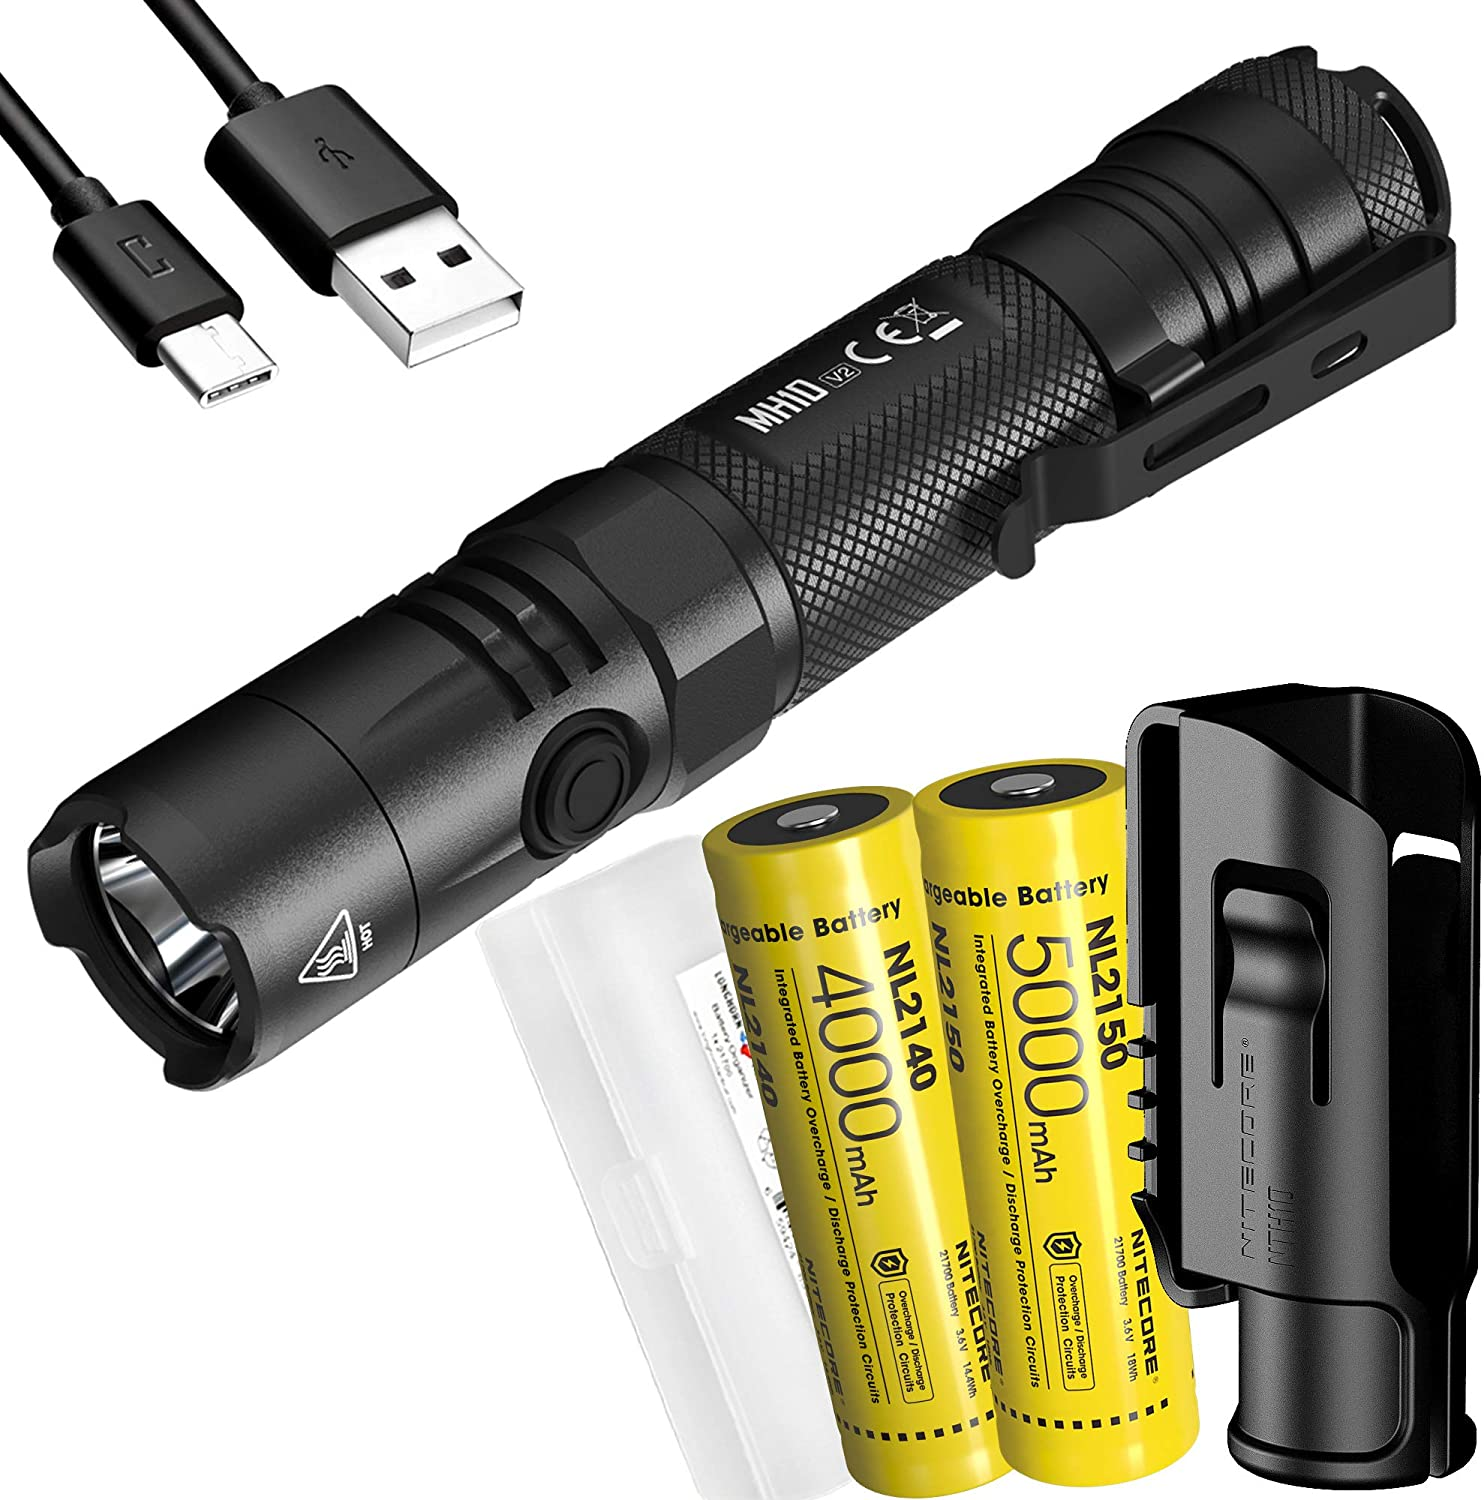 Nitecore MH10 v2 1200 Lumen USB-C Rechargeable Flashlight with 2x Batteries, Hard Holster and LumenTac Case